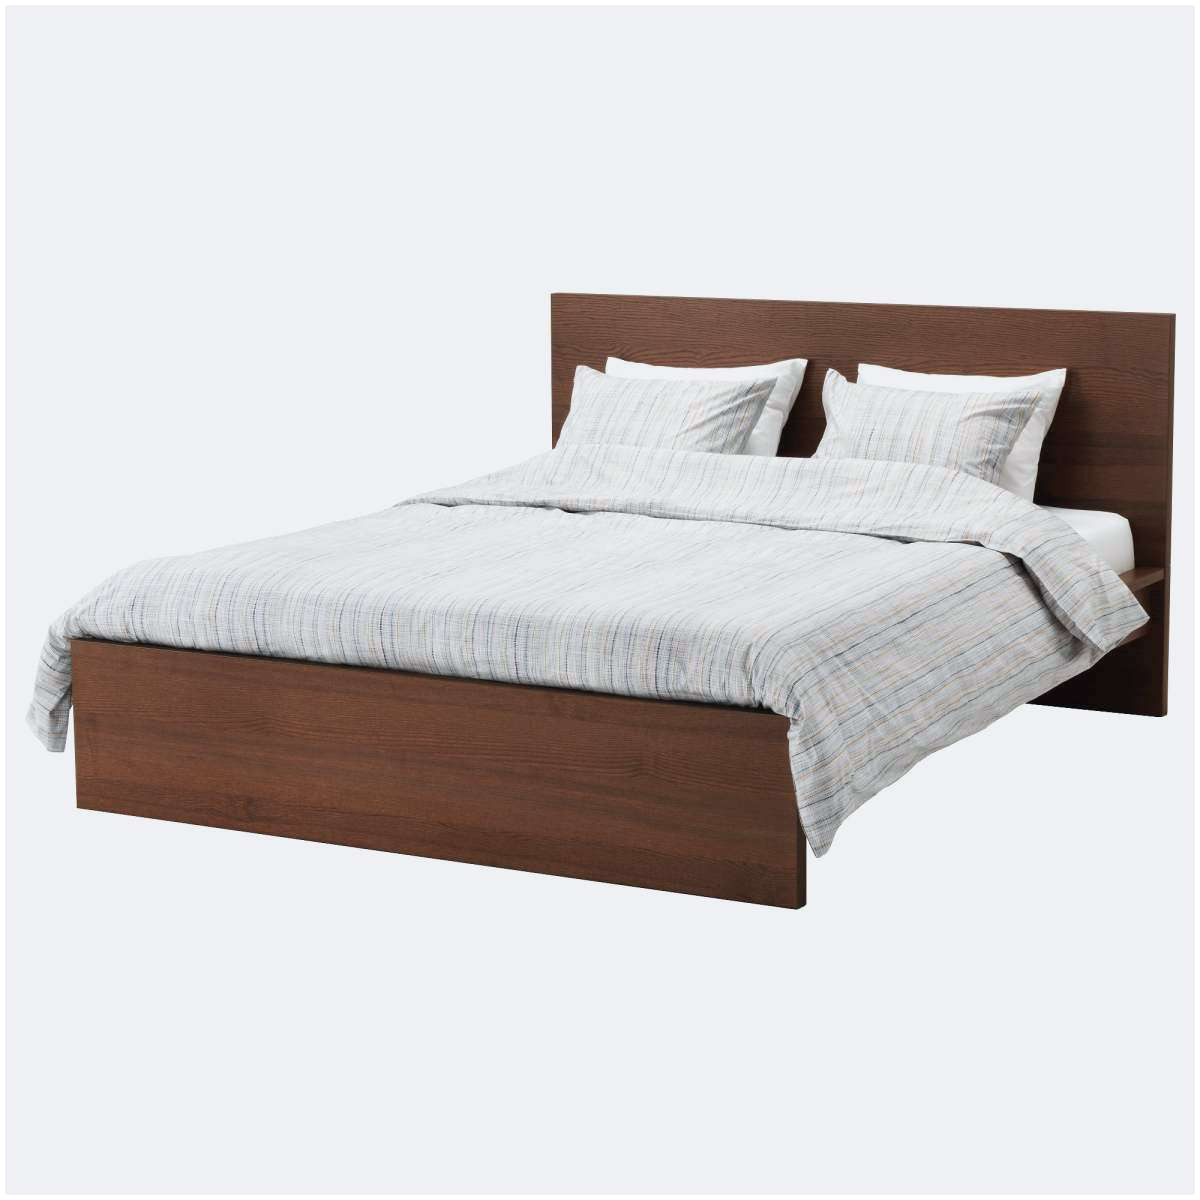 beau ikea queen bed frame with drawers luxury brimnes bed frame with pour option lit brimnes ikea